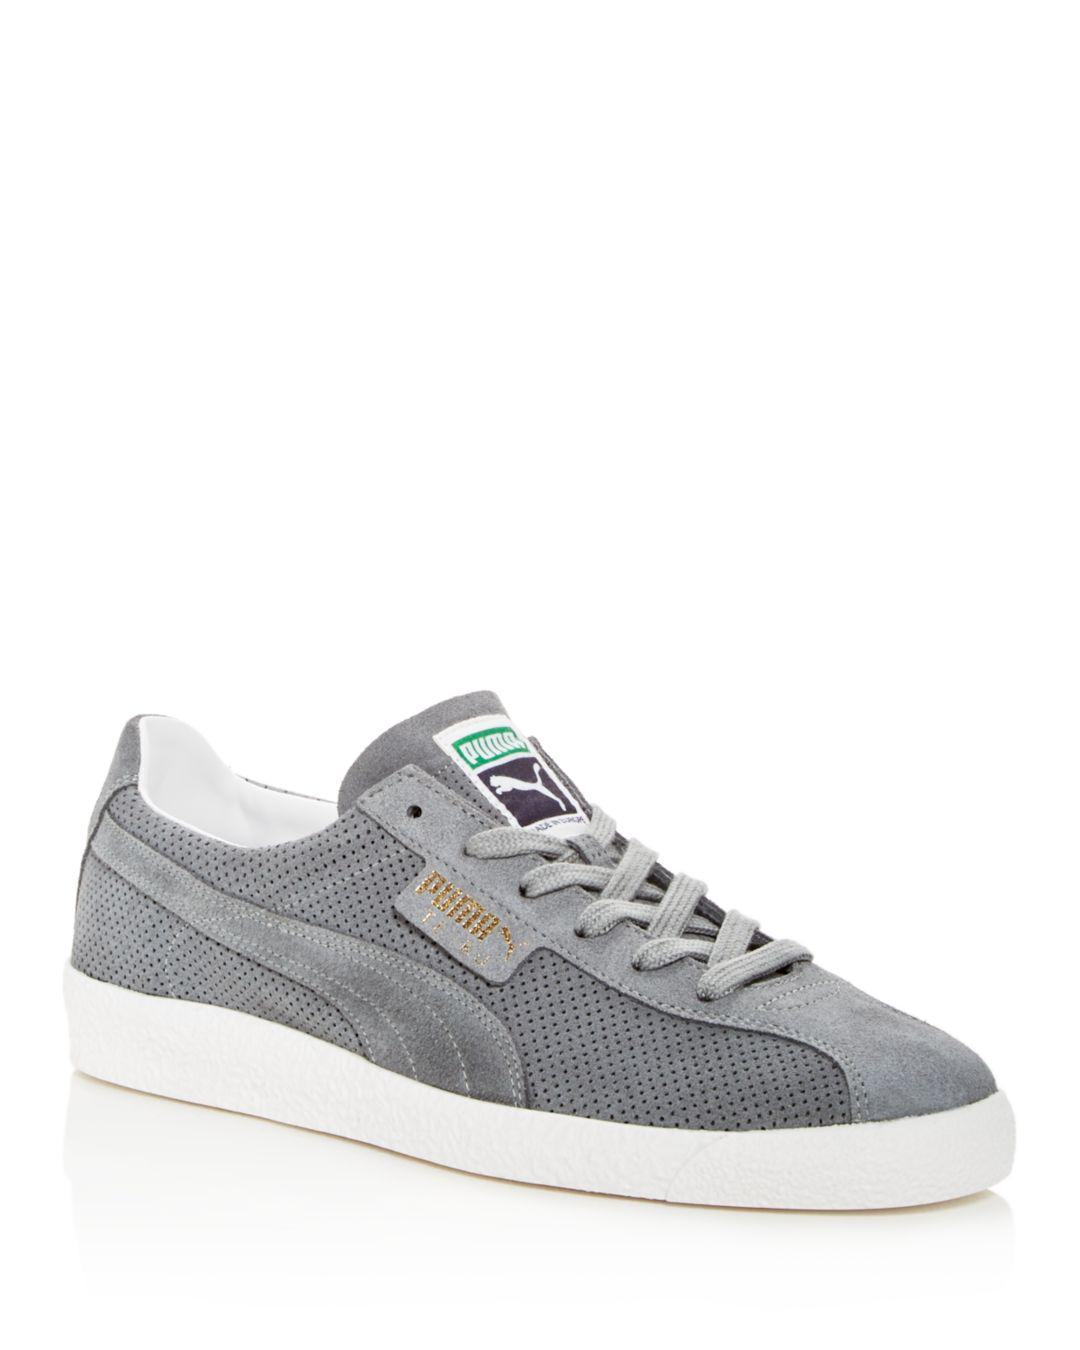 5e4b95837f9 Lyst - PUMA Men s Te-ku Summer Perforated Suede Lace Up Sneakers in ...